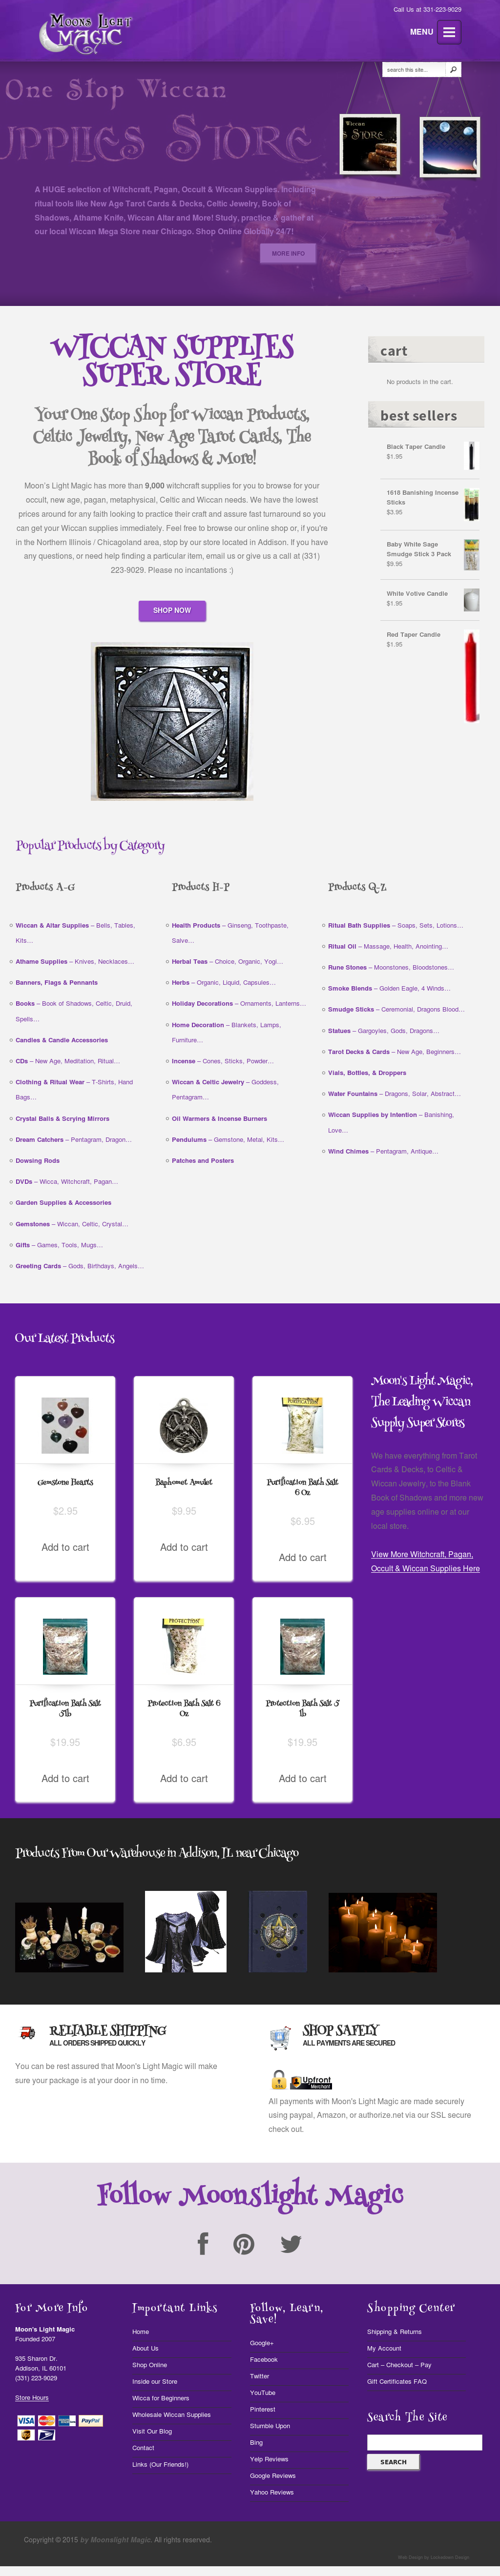 Wiccan Supplies-moon's Light Magic Competitors, Revenue and